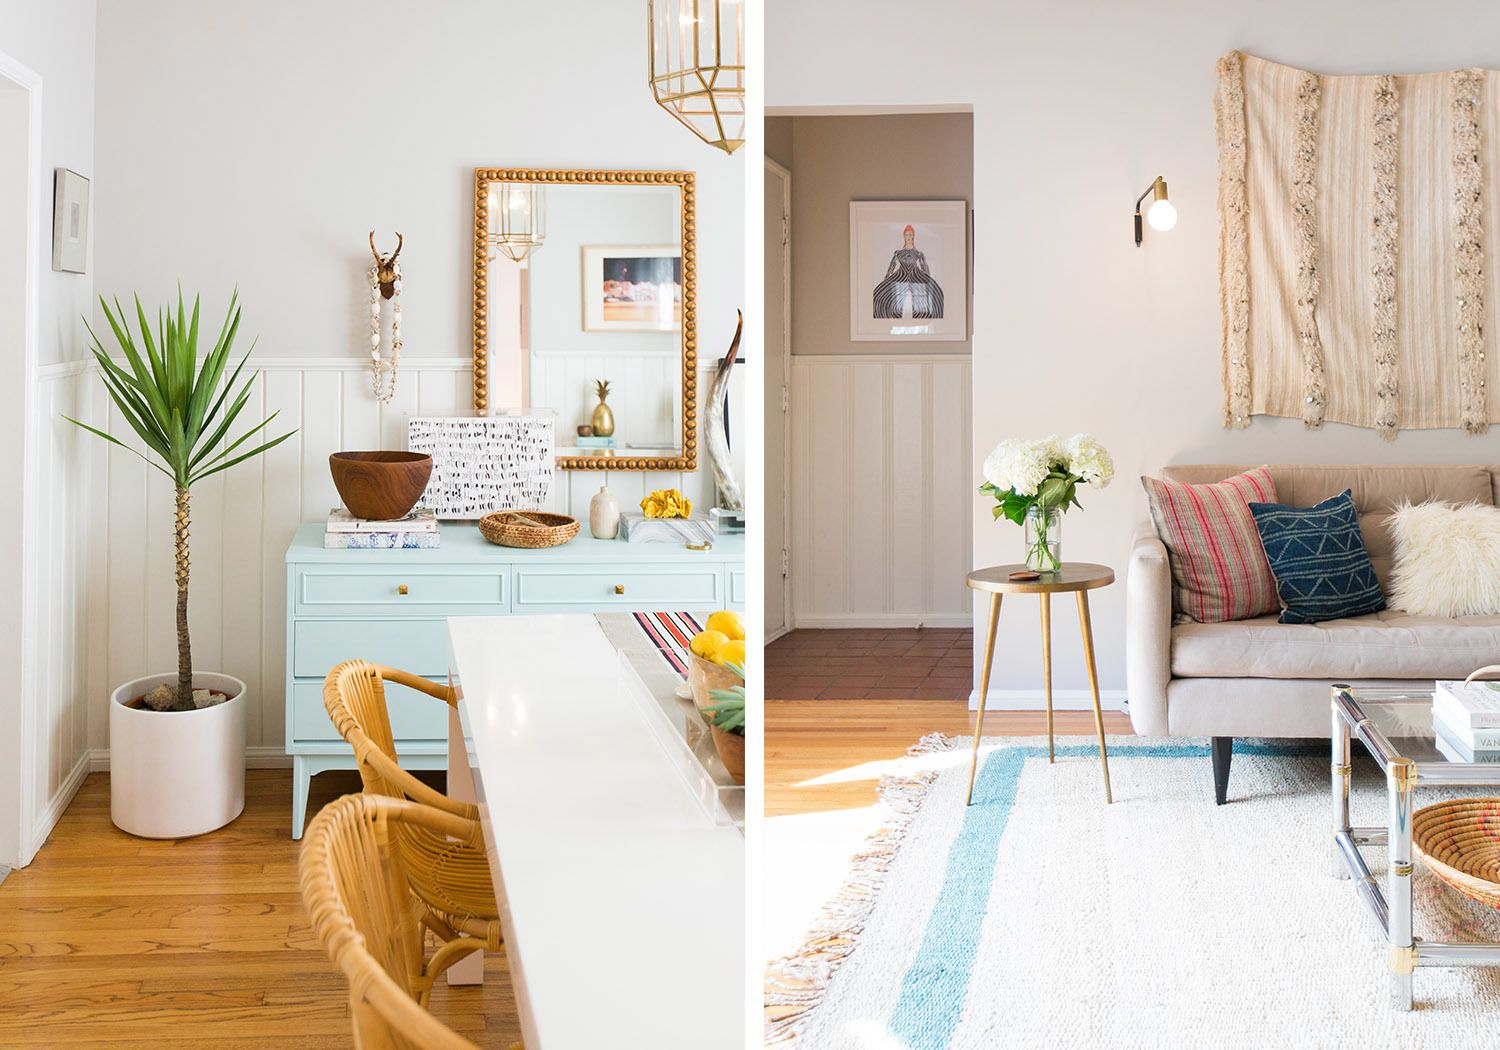 Céile Callahan Attests That The Key To A Well Designed Home Lies In  Creative Storage Strategies. U201cThere Are So Many Interesting Storage  Solutions Out There ...